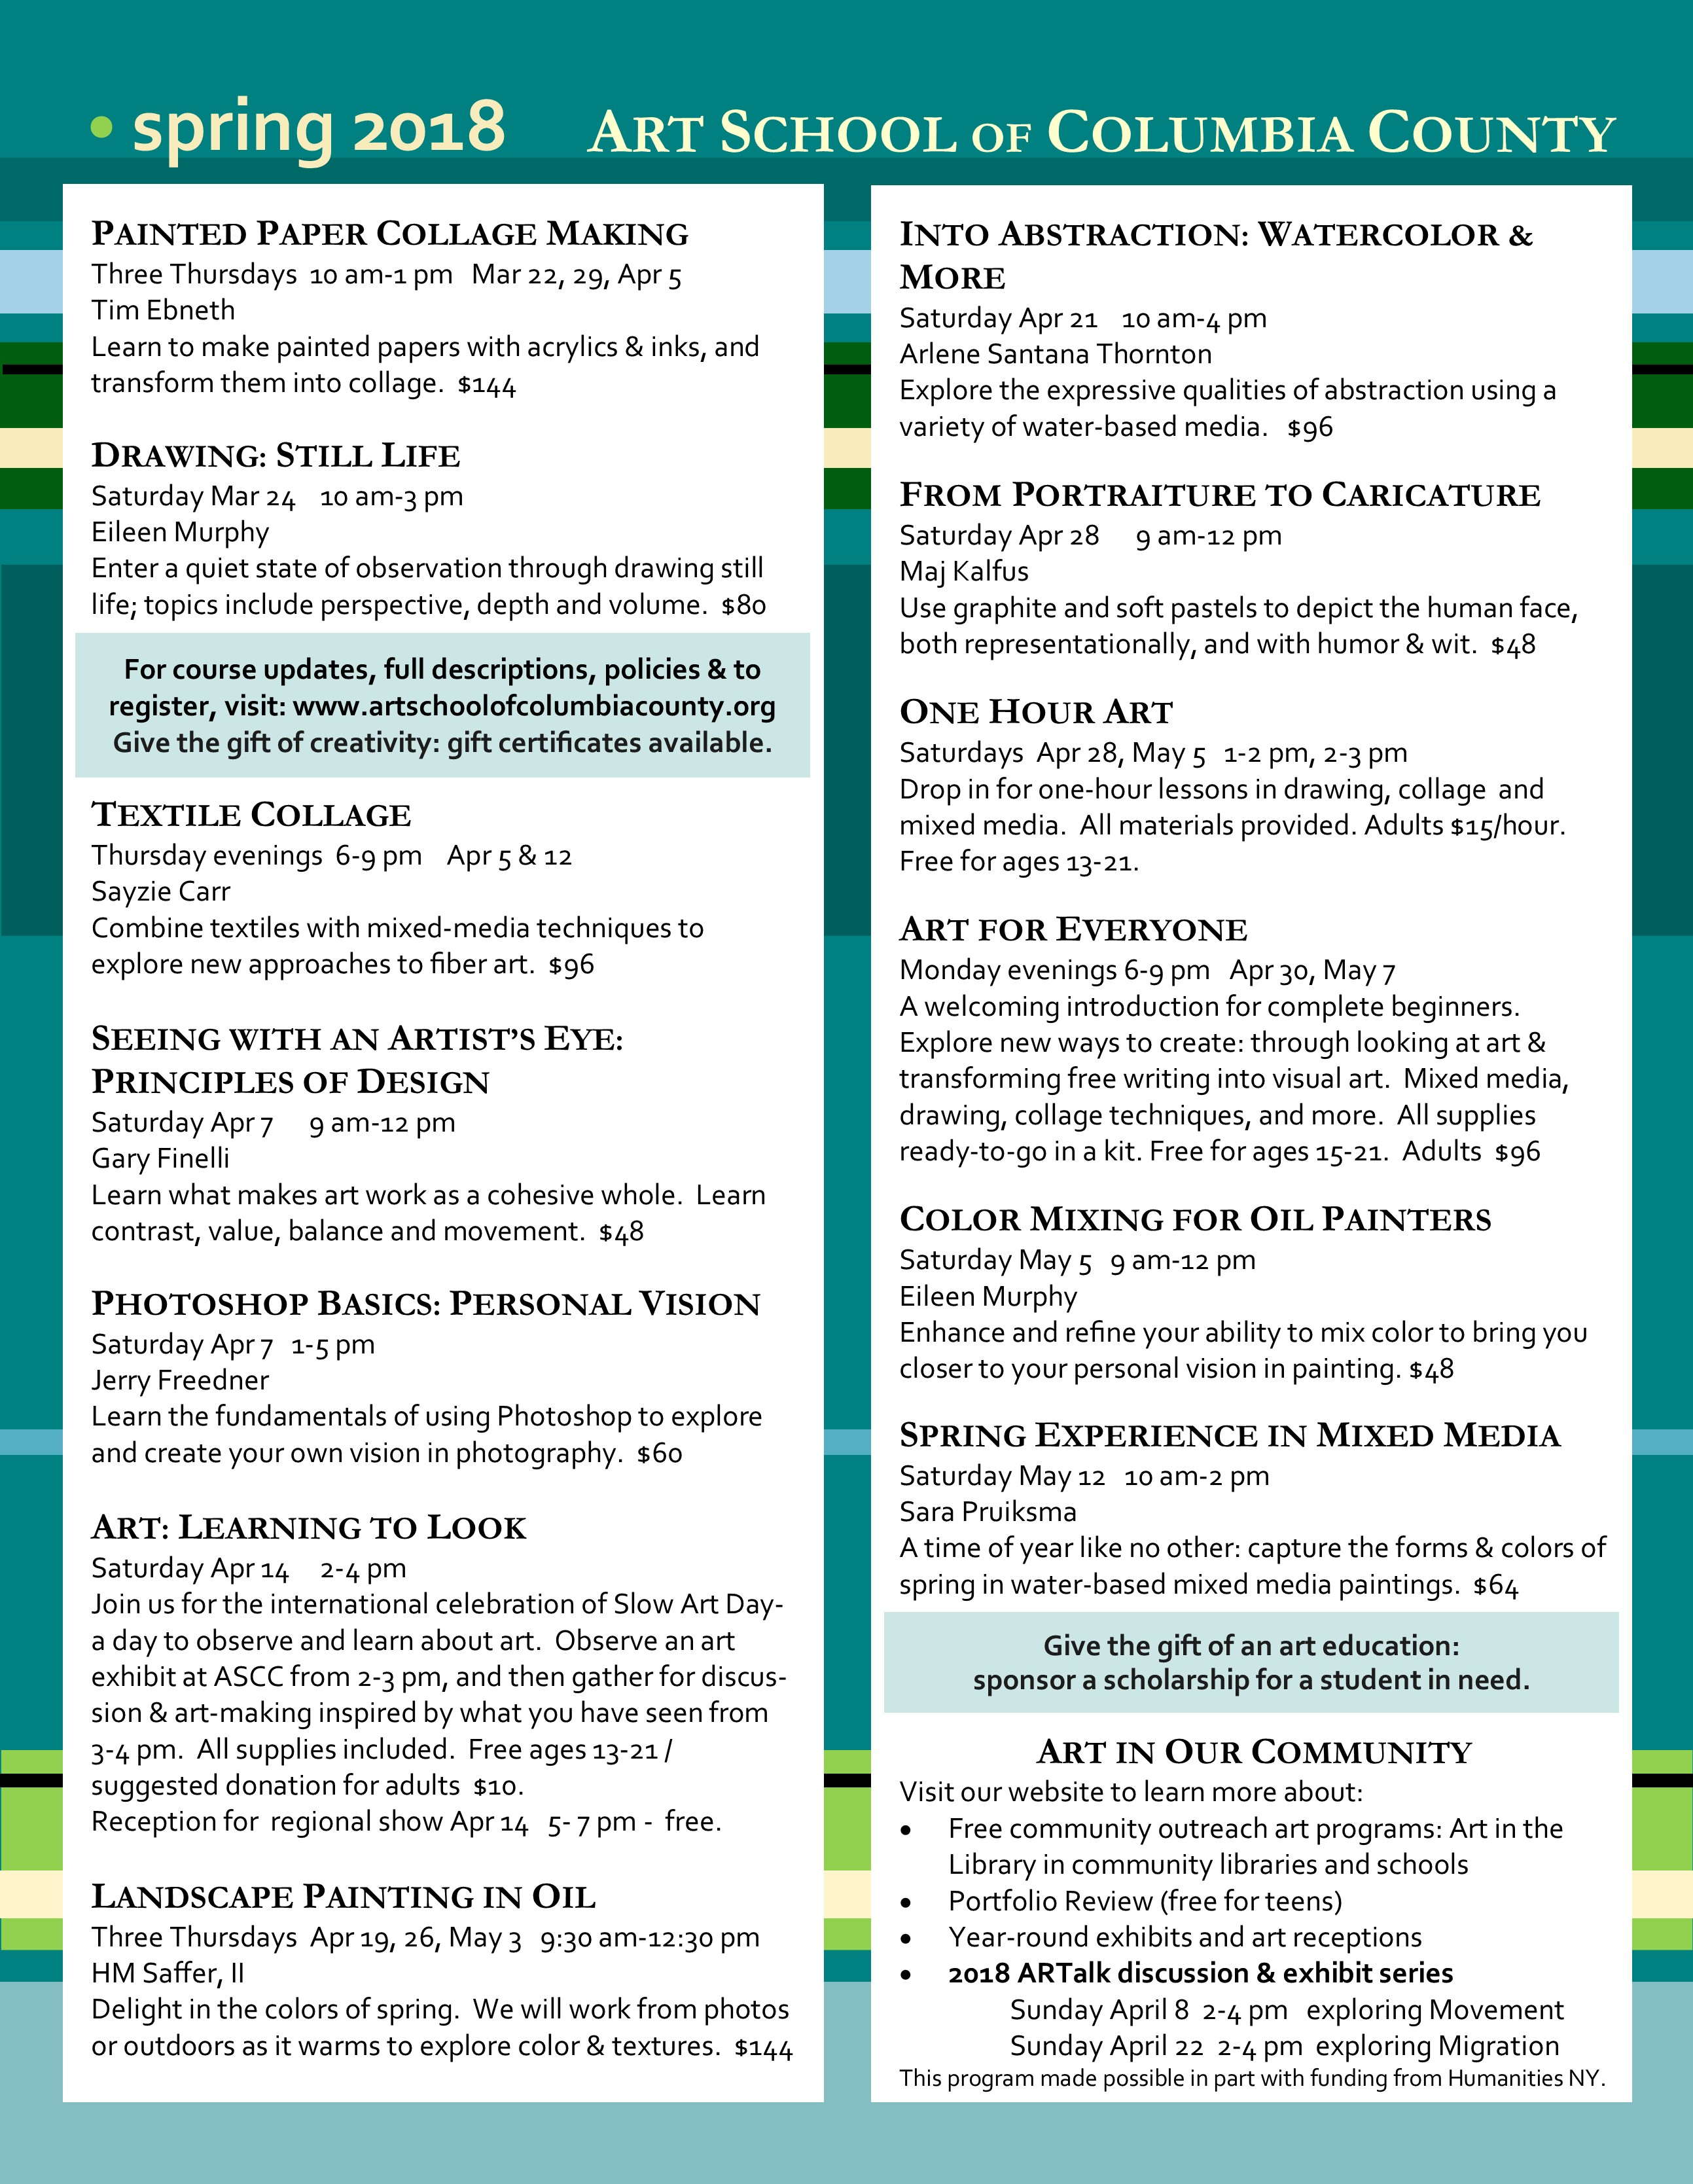 Spring 2018 Course Listings (Poster)